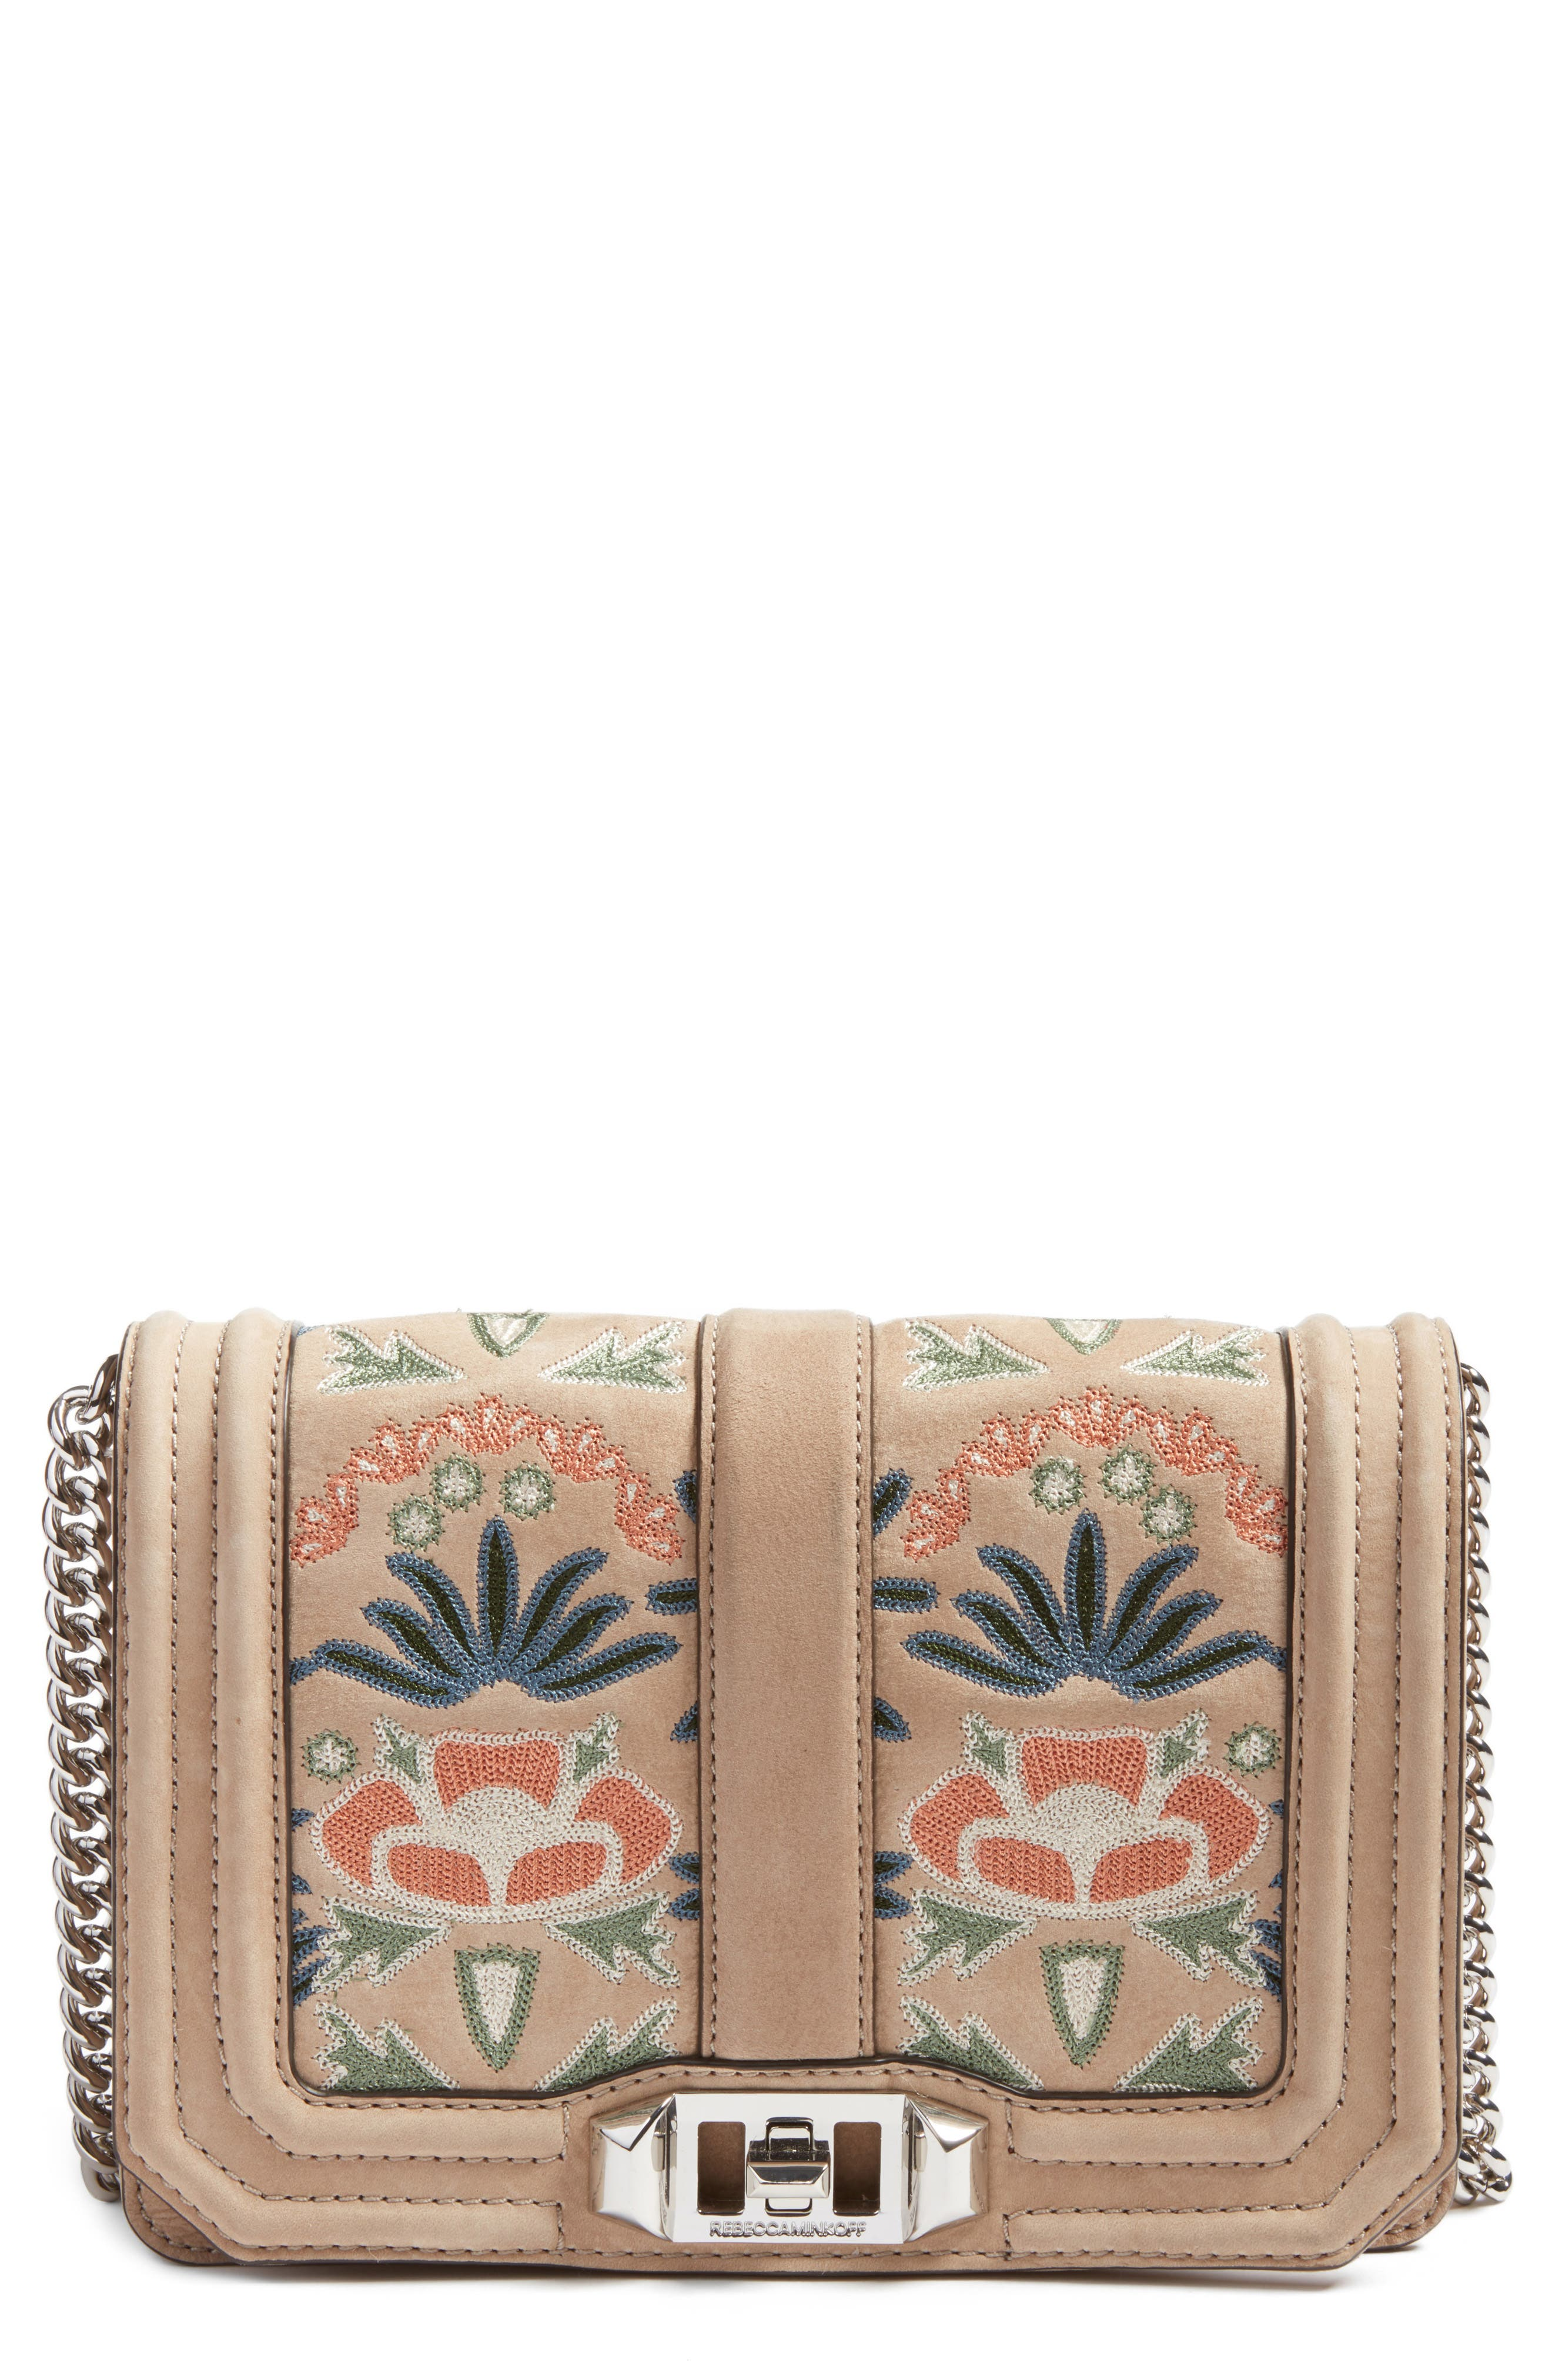 REBECCA MINKOFF, Small Love Embroidered Nubuck Crossbody Bag, Main thumbnail 1, color, 250